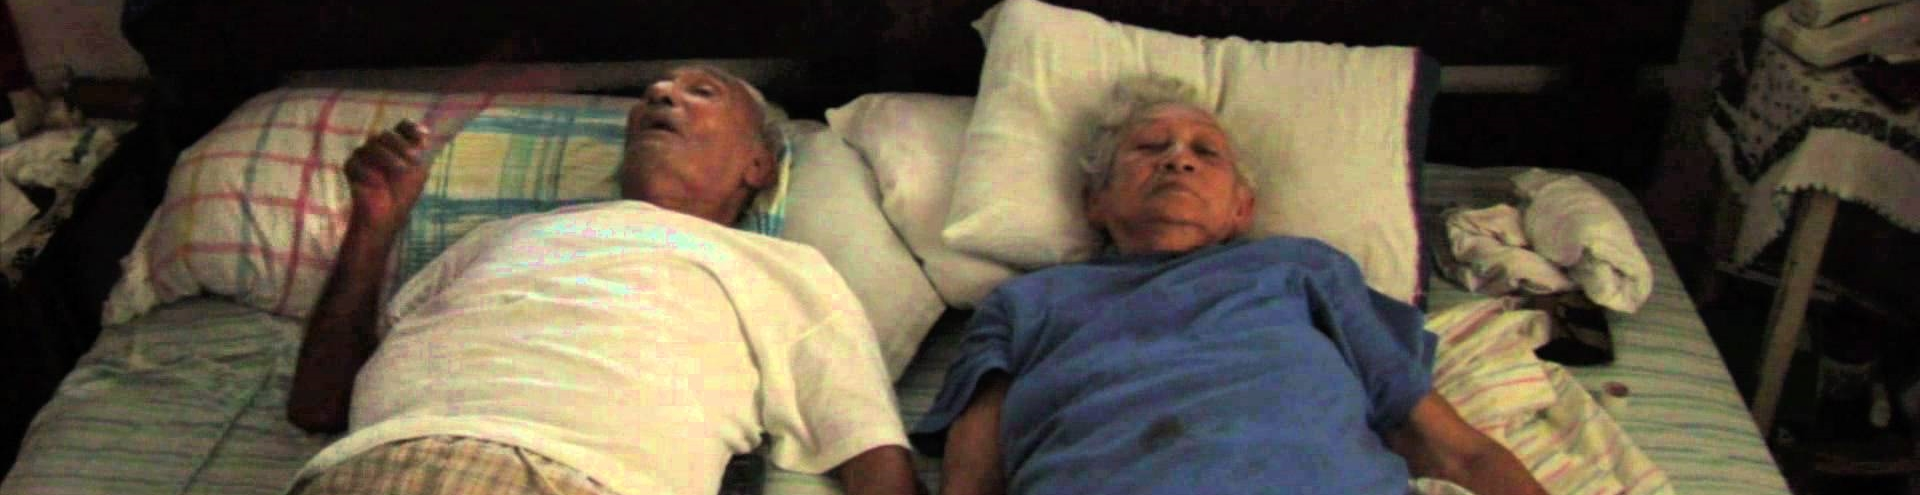 Un día menos (One Day Less). 2009. Mexico. Directed by Dariela Ludlow. In the home they built in Acapulco, Carmen and Emetrio, an elderly couple in their 80s and 90s, live from day to day in anticipation of the next visit from their extended family. This intimate story captures their resilience and frailty, and the meaning of existence near the end of life. Ludlow's first feature documentary, shot with beautiful cinematography, poignantly captures the love and tensions of a couple as well as the solitary struggles they must face. 76 min. New York premiere. Introductions and discussions with Ludlow. Wednesday, February 23, 4:30pm; Thursday, February 24, 8pm